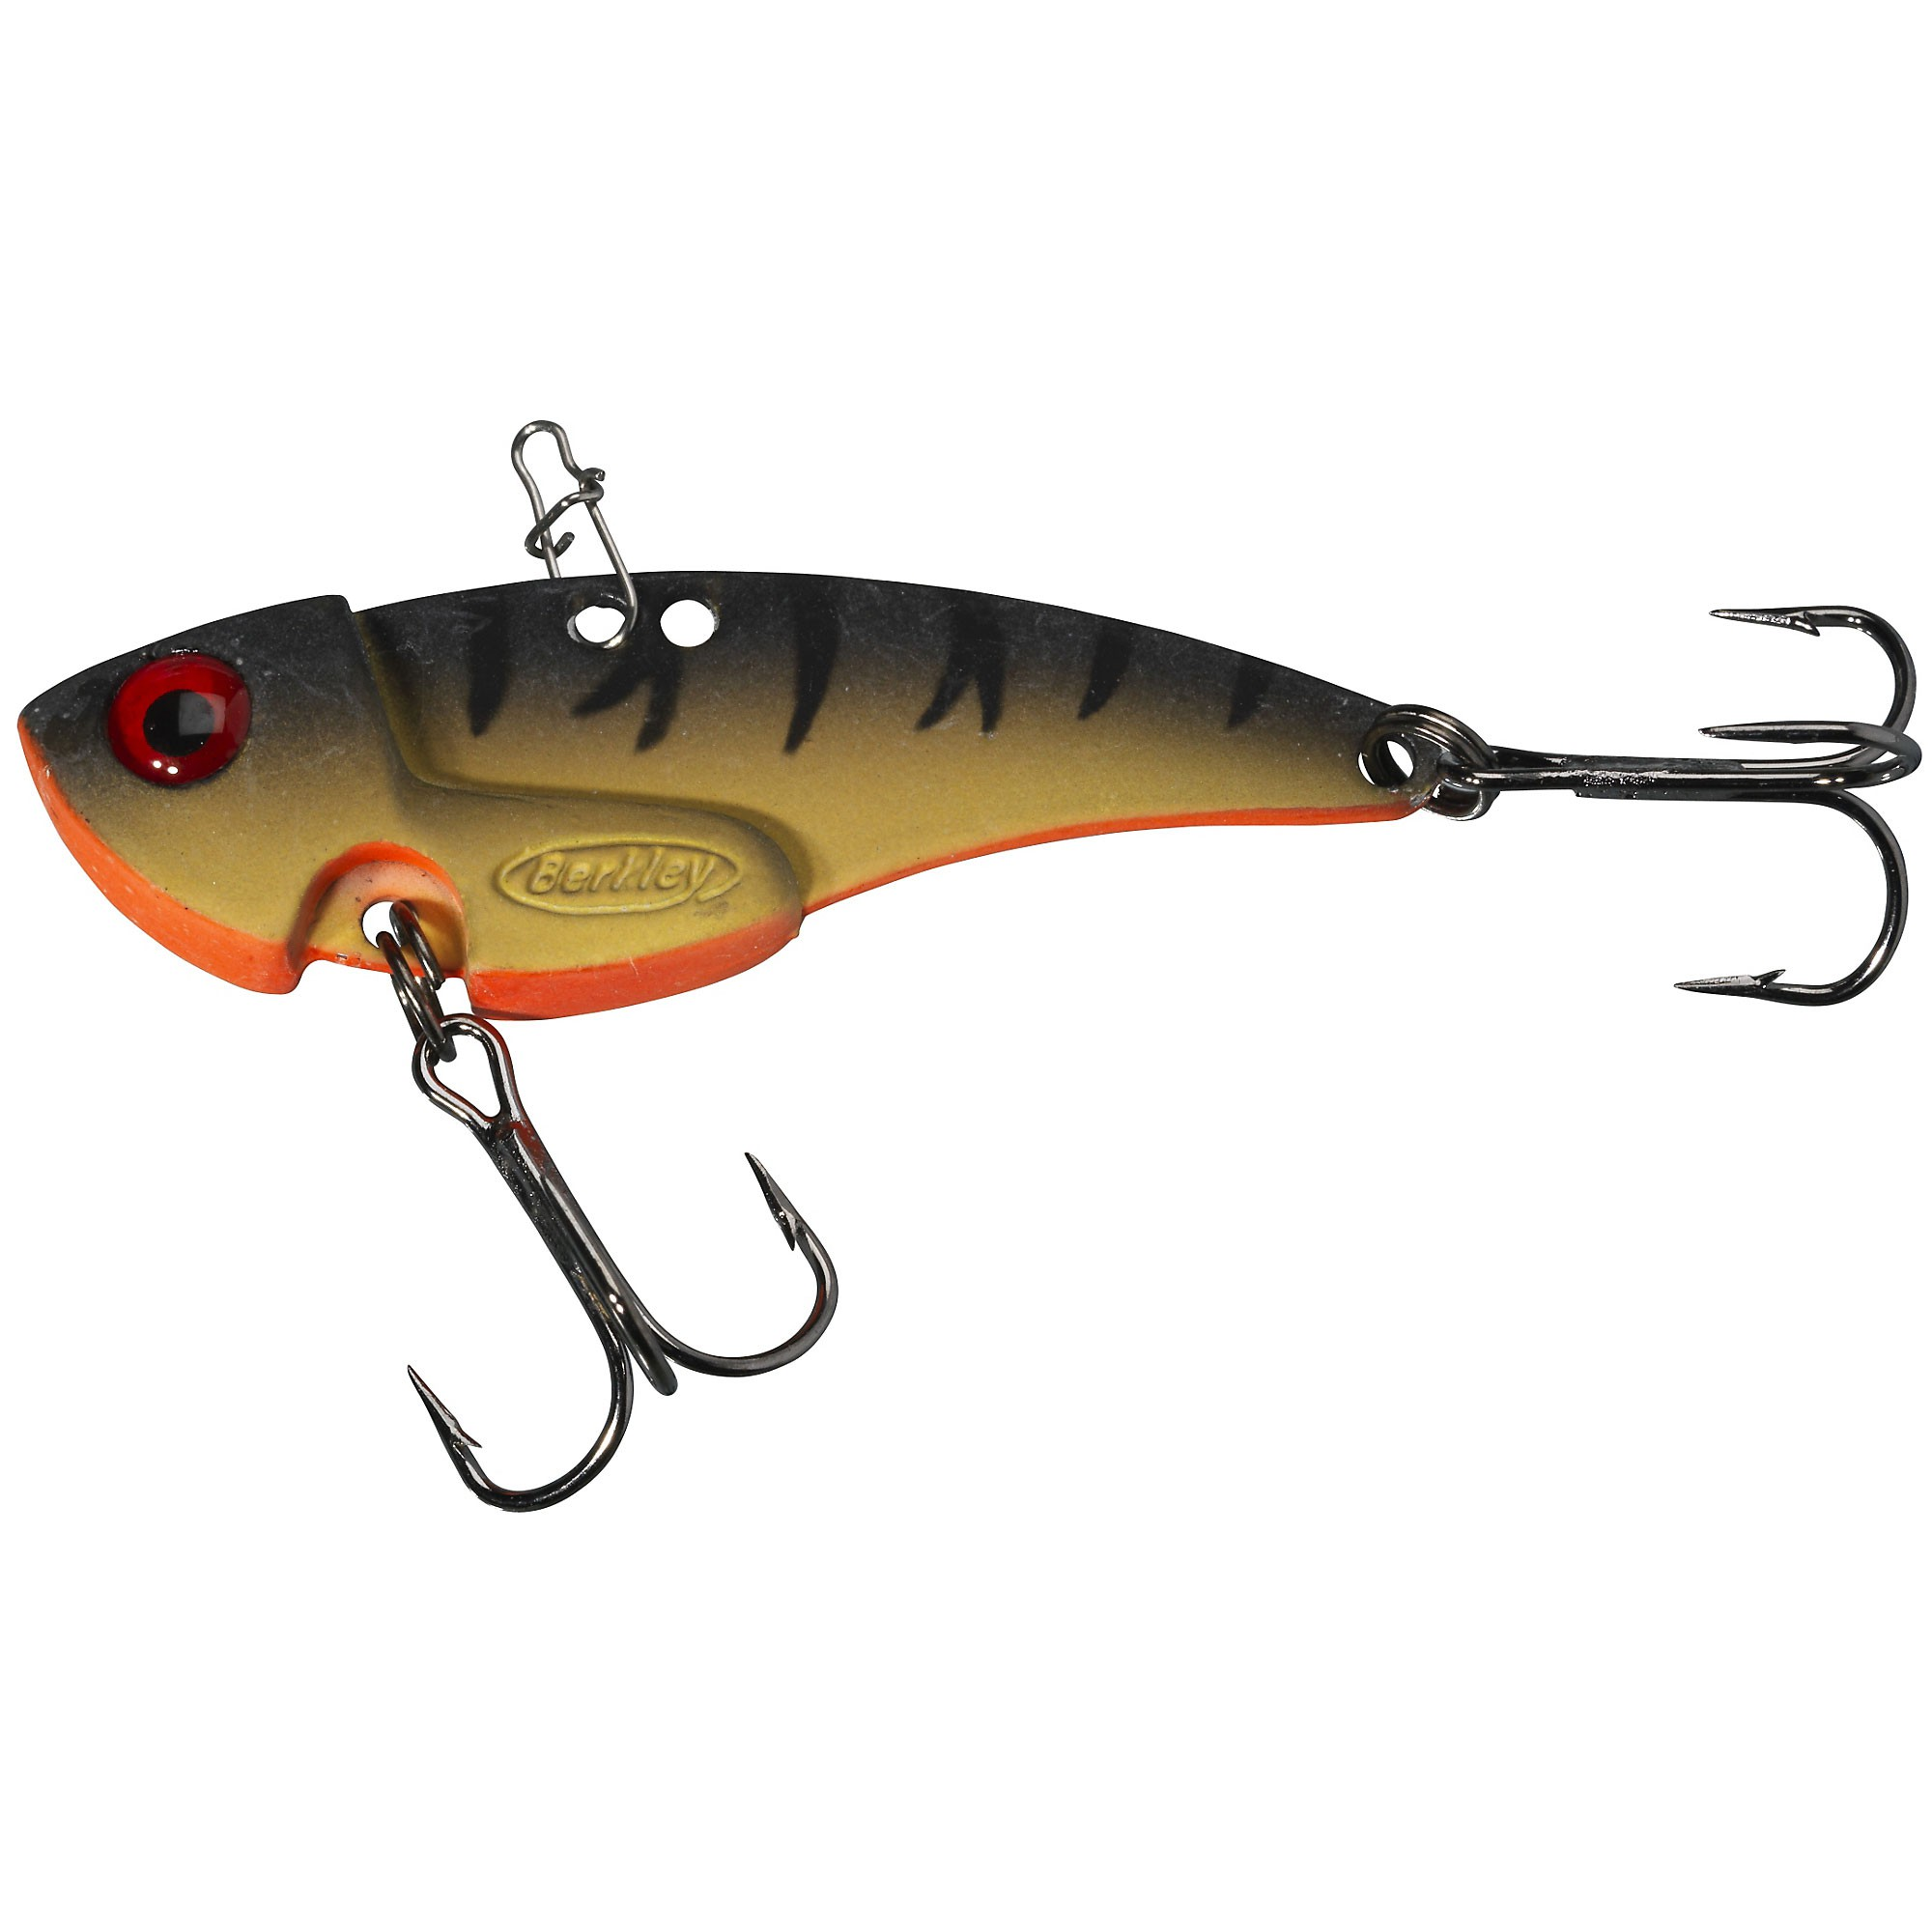 Berkley Powerblade tiger prawn